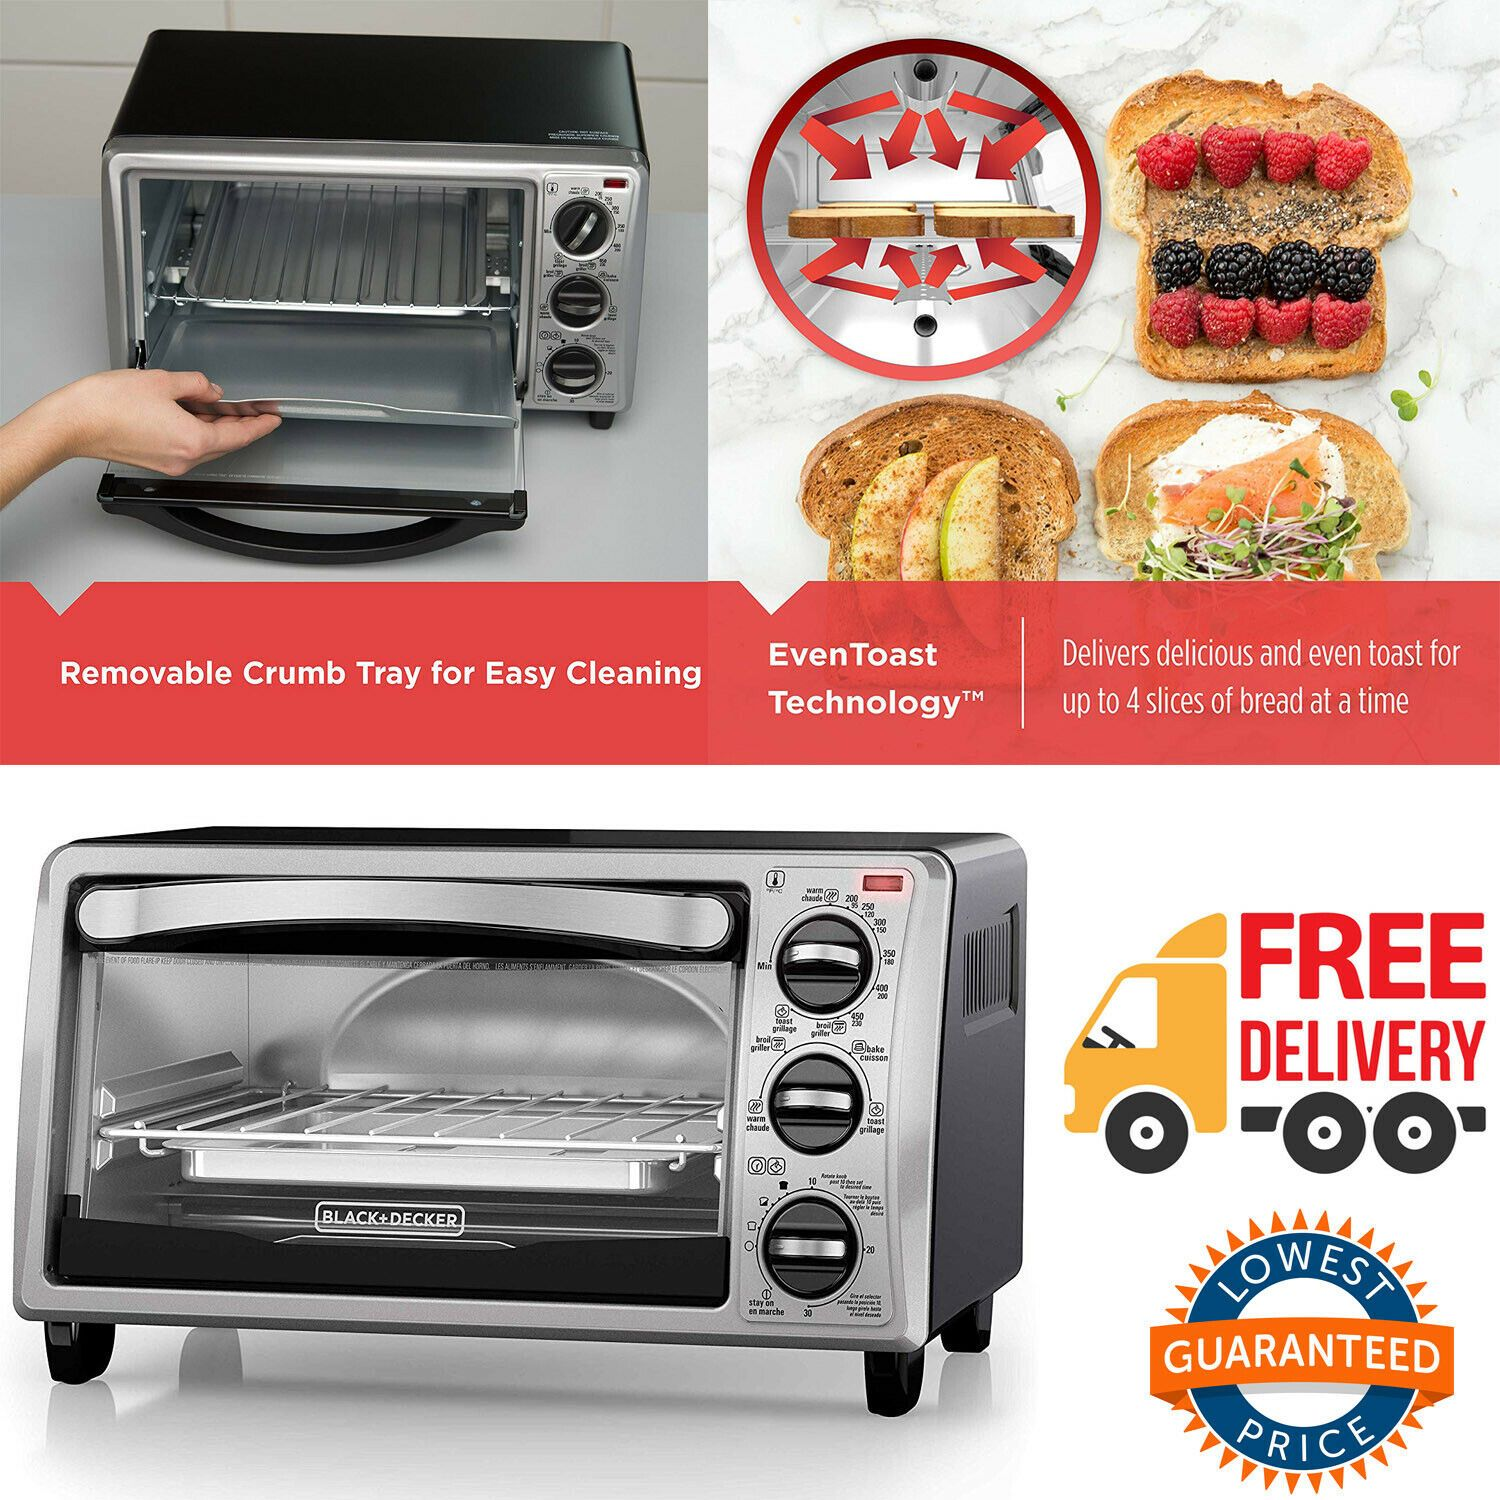 Toaster Oven 4 Slice Removable Crumb Tray 4 Functions Stainless Steel Toaster Toasters Ideas Of Toasters Toa Toaster Stainless Steel Toaster Toaster Oven